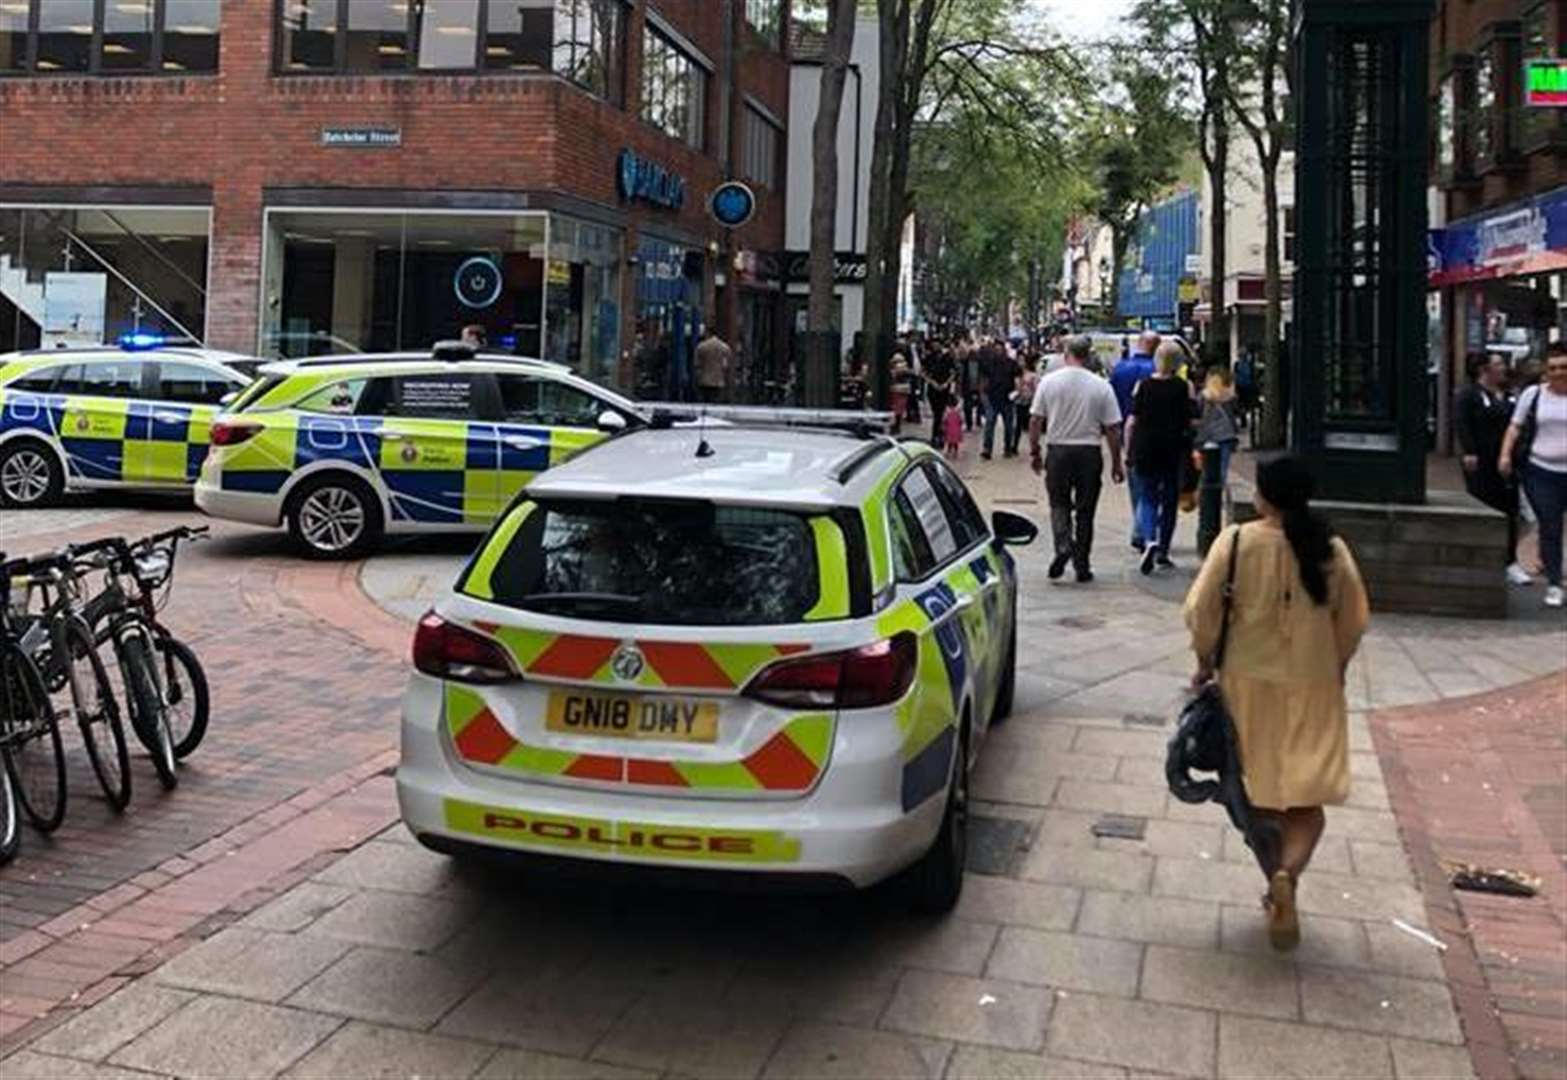 Police called to high street disturbance